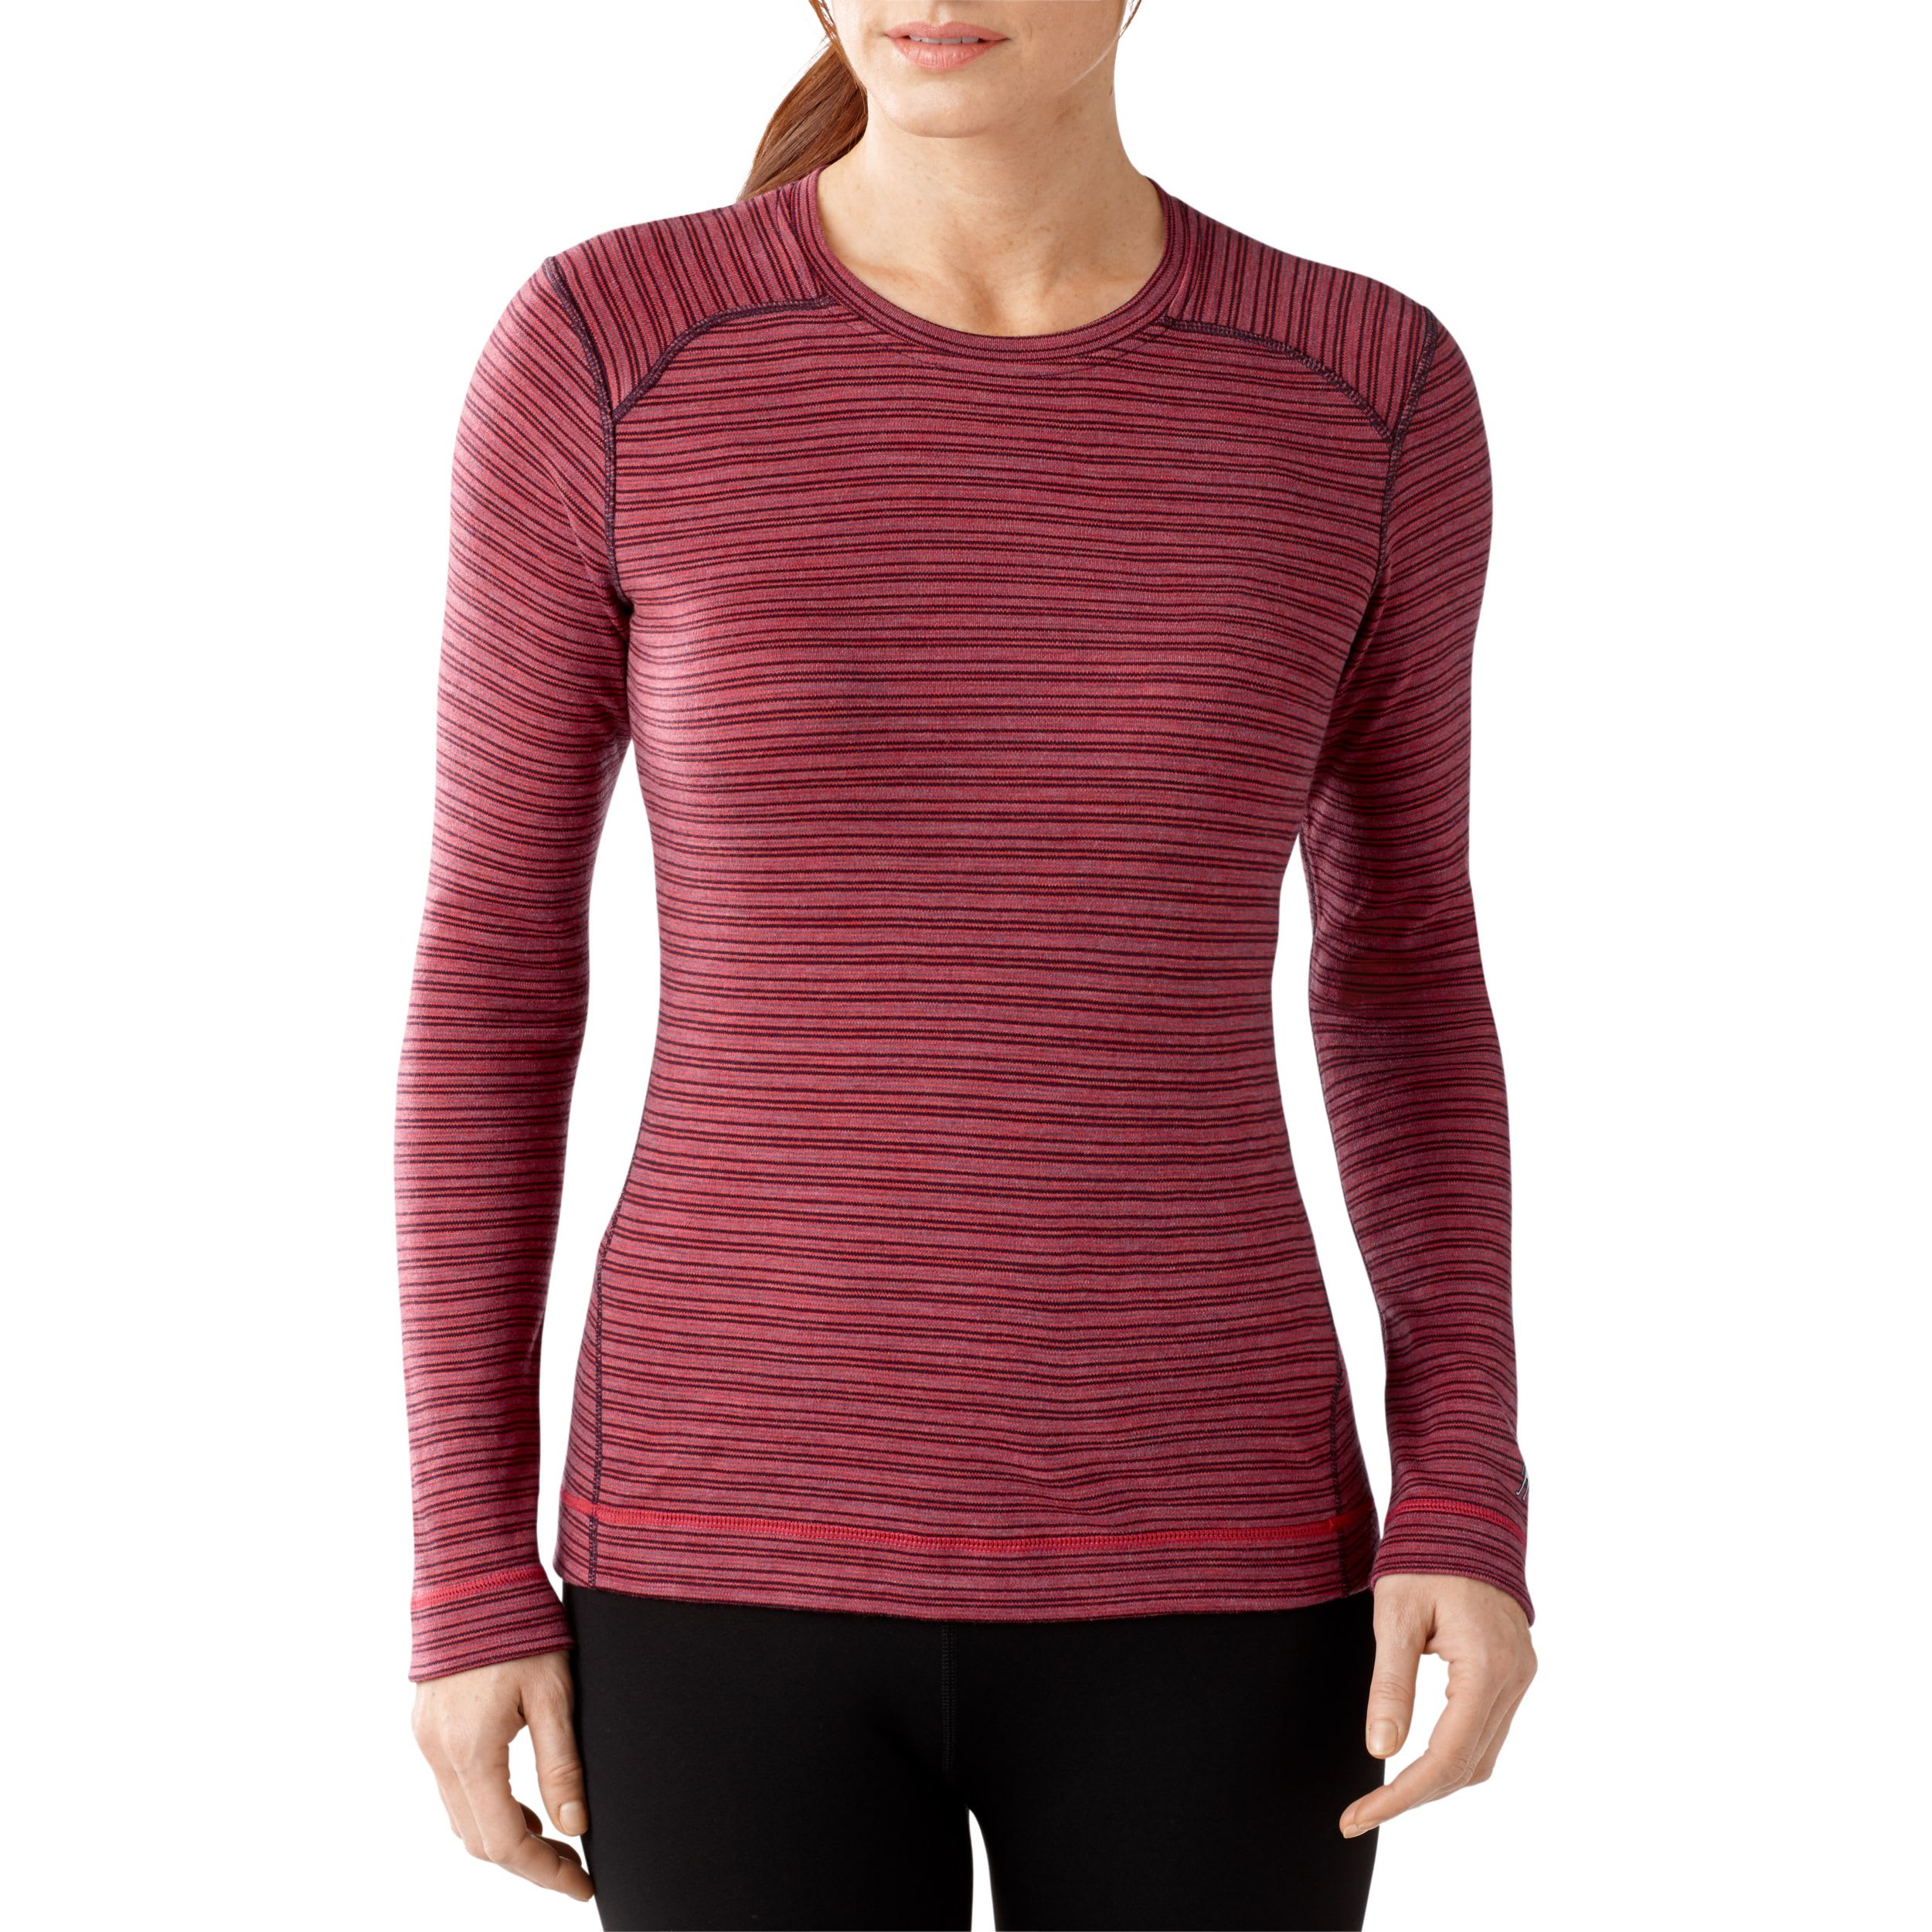 Smartwool NTS Mid 250 Pattern Crew Baselayer Top - Womens